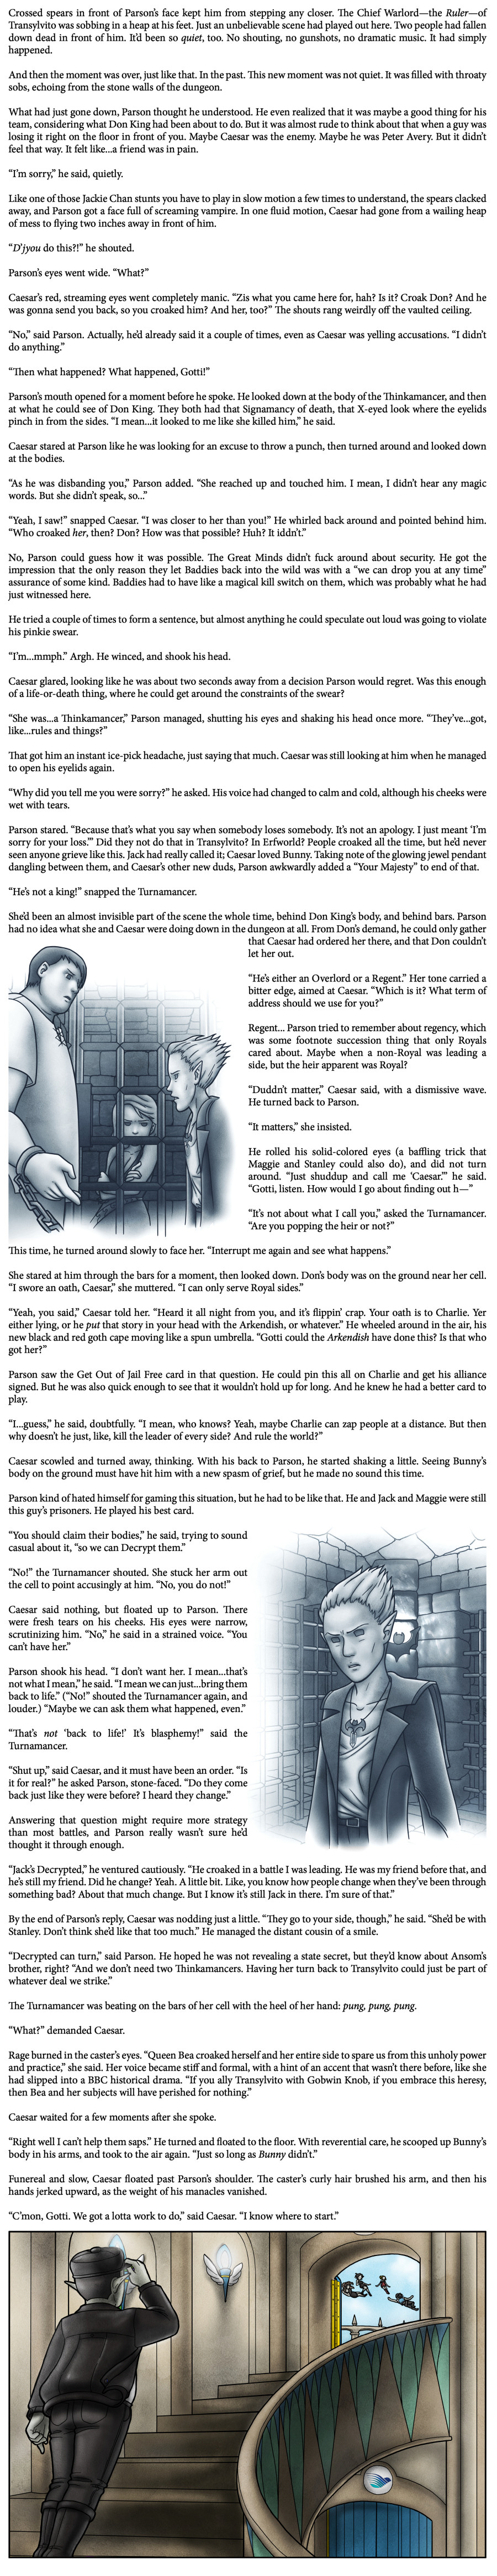 Comic - Book 4 - Page 74